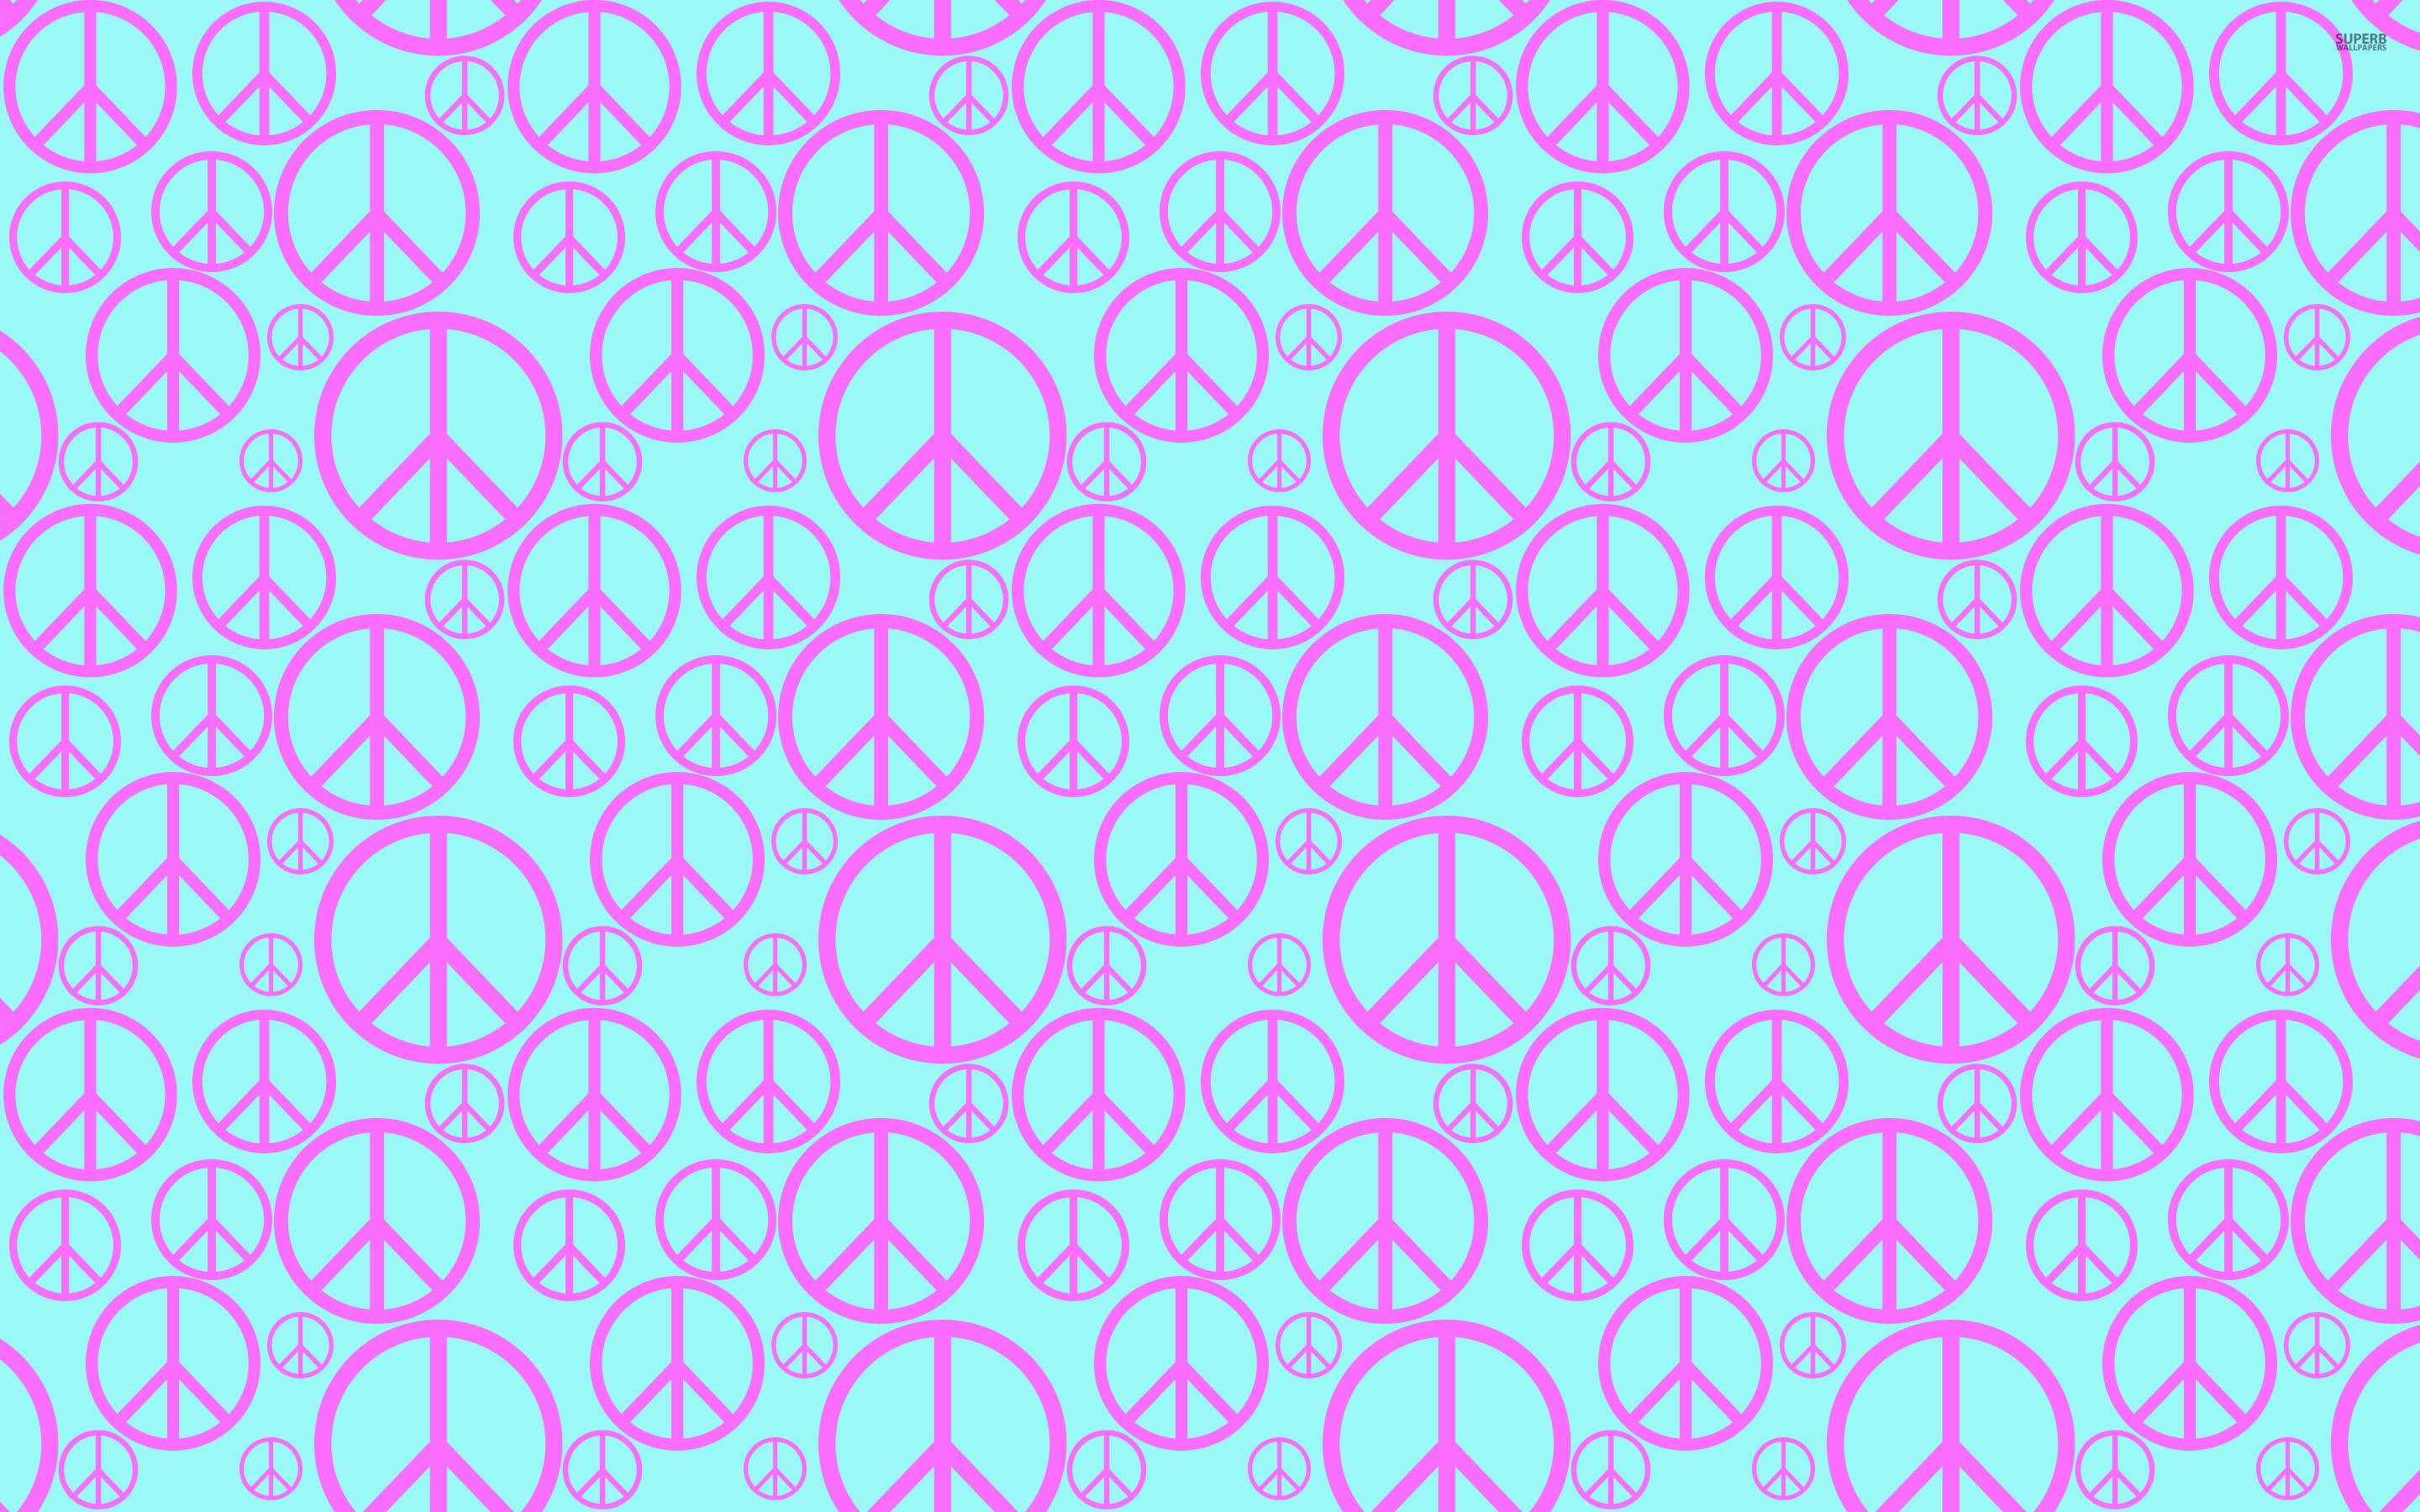 peace backgrounds 183��